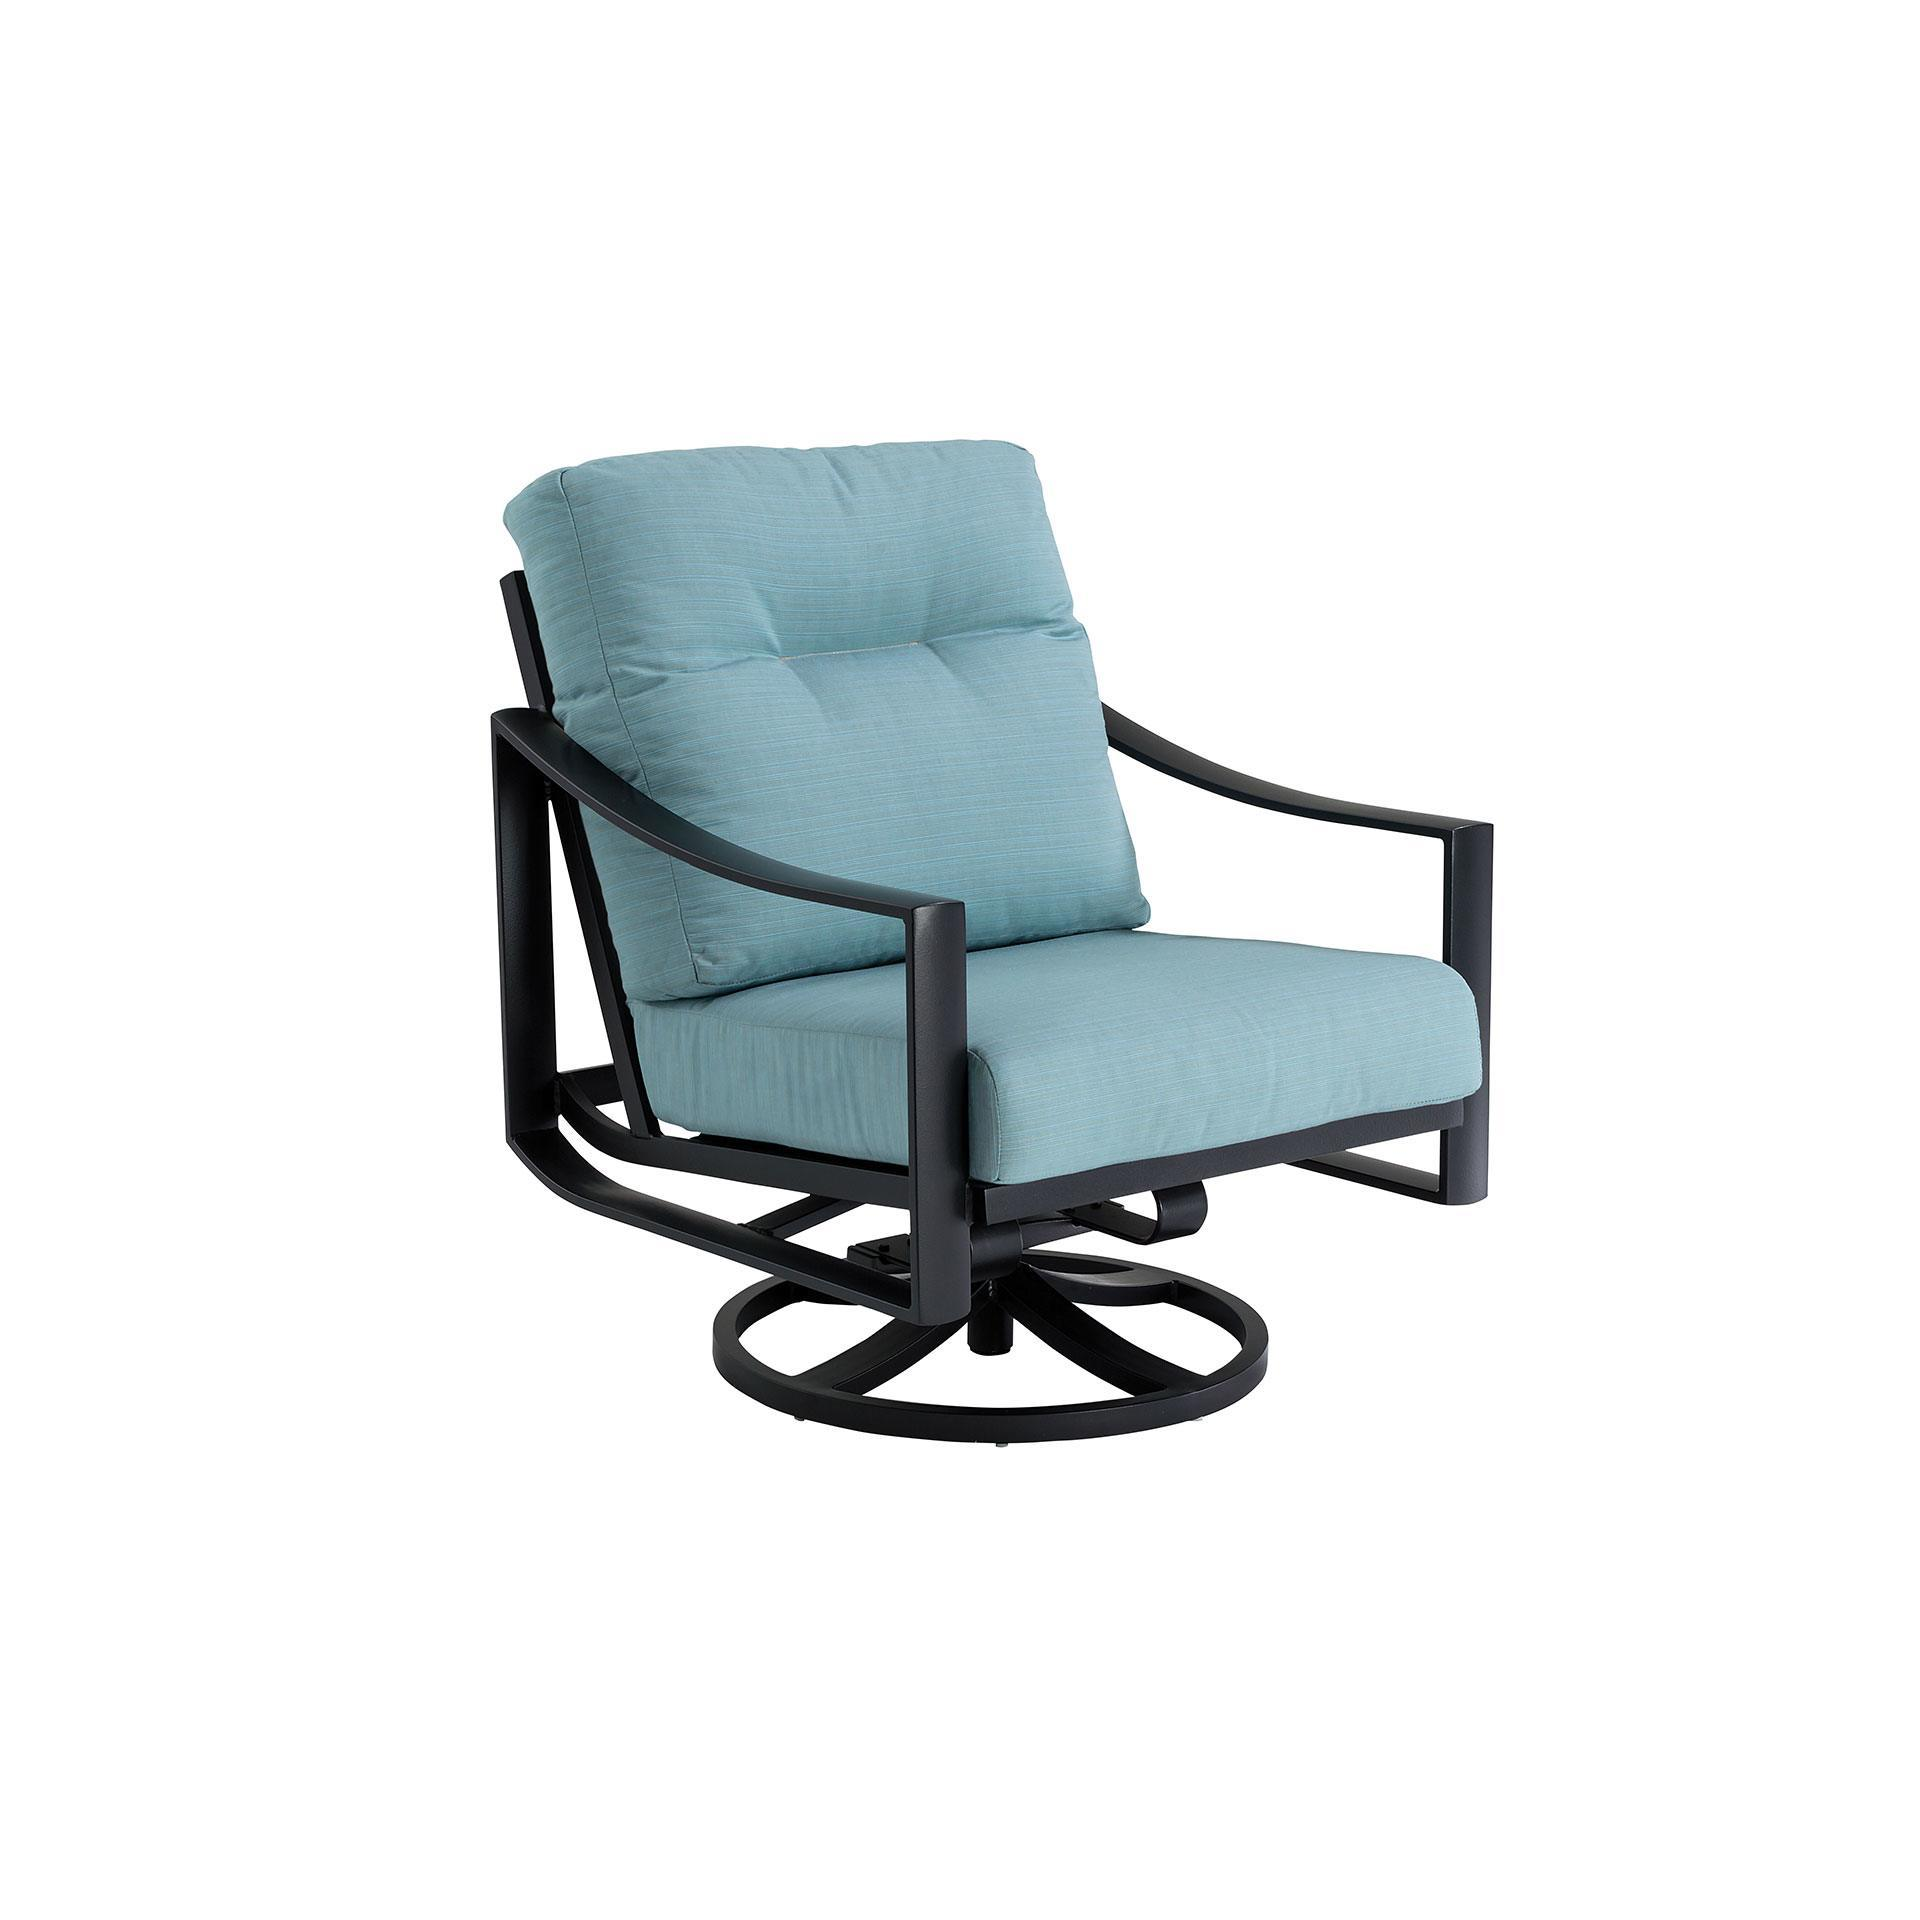 Tropitone Kenzo Cushion Swivel Action Lounger Leisure Living